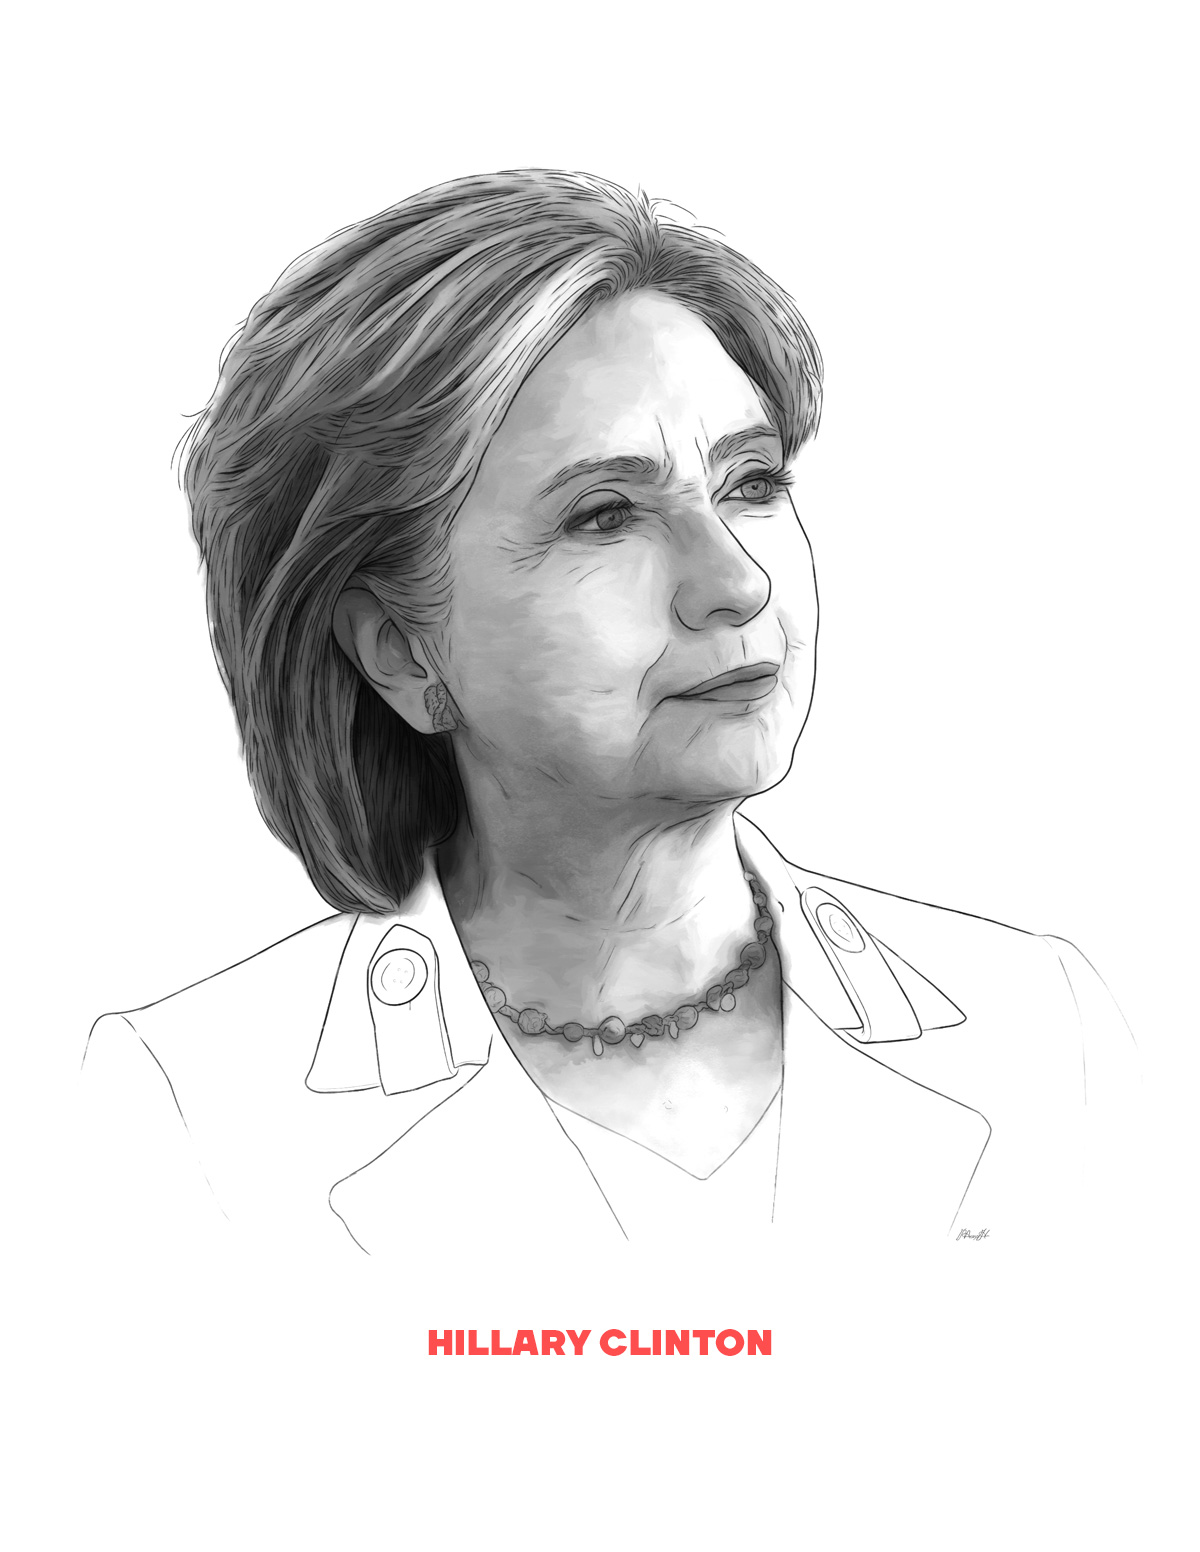 Hillary Clinton portrait from People of 2016 series, by Max Hancock